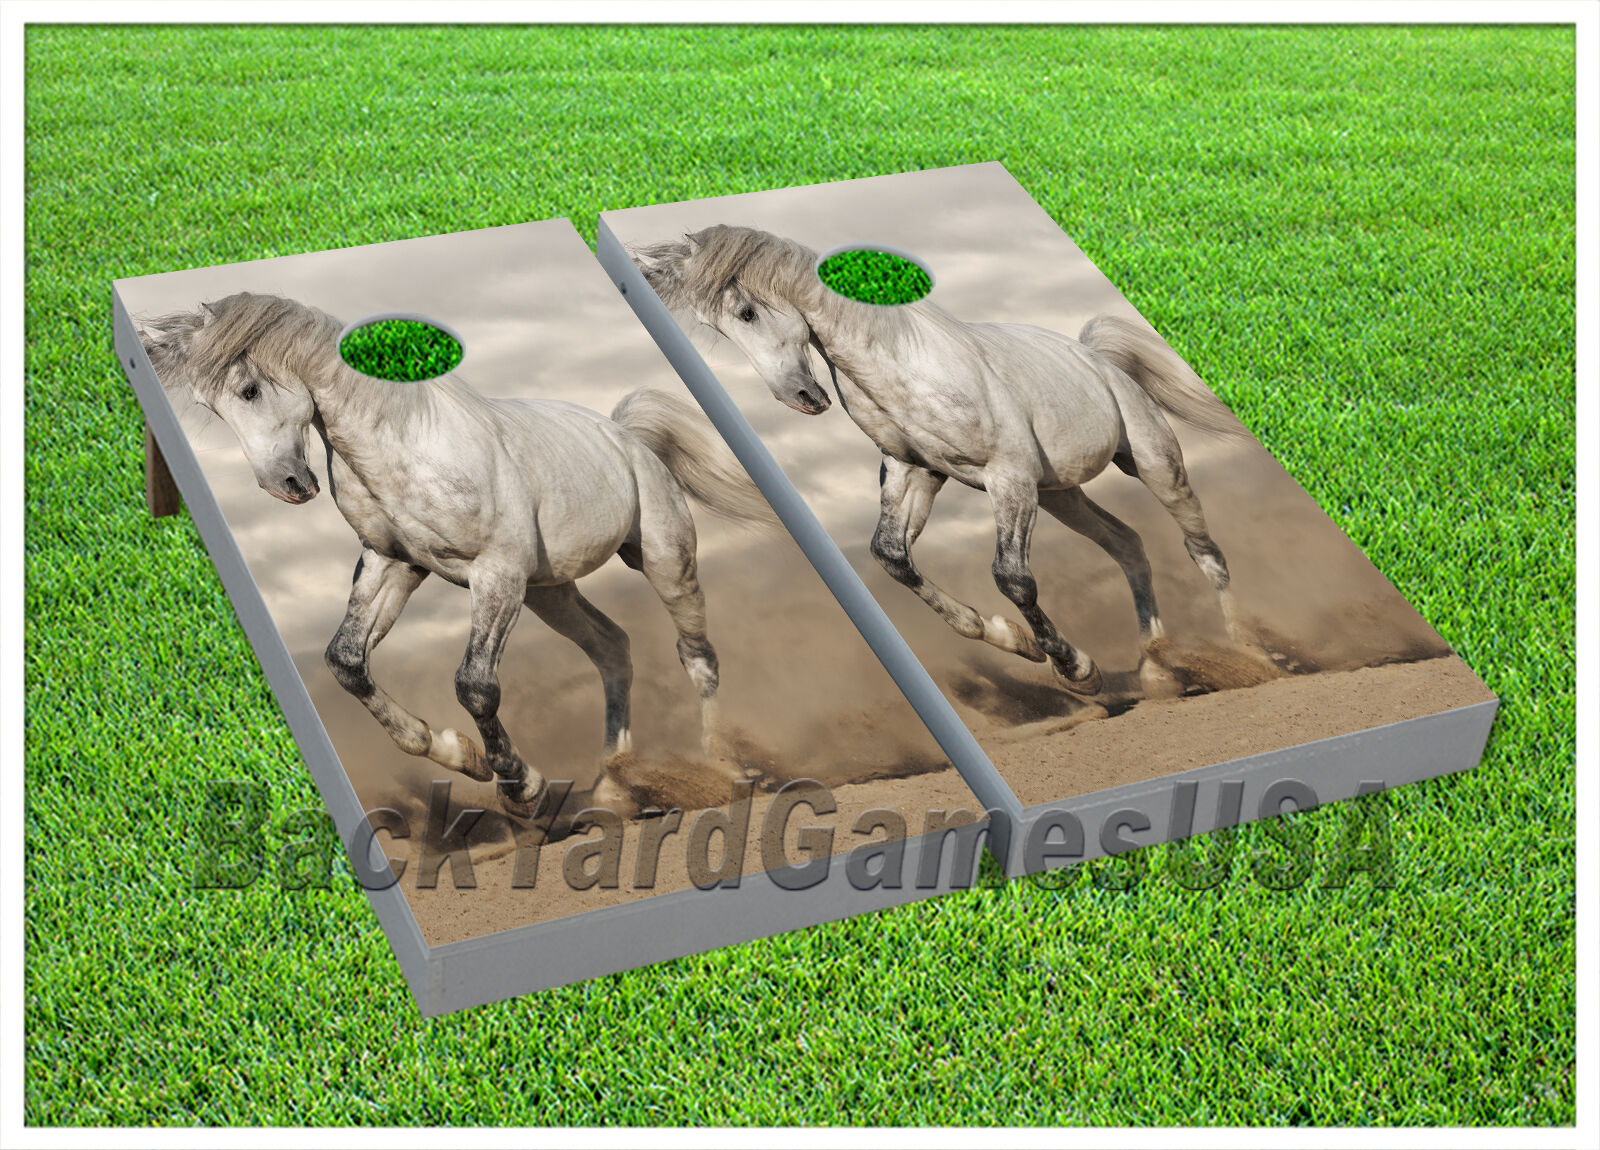 CORNHOLE BEANBAG TOSS  GAME w Bags Game Boards Set 913  healthy